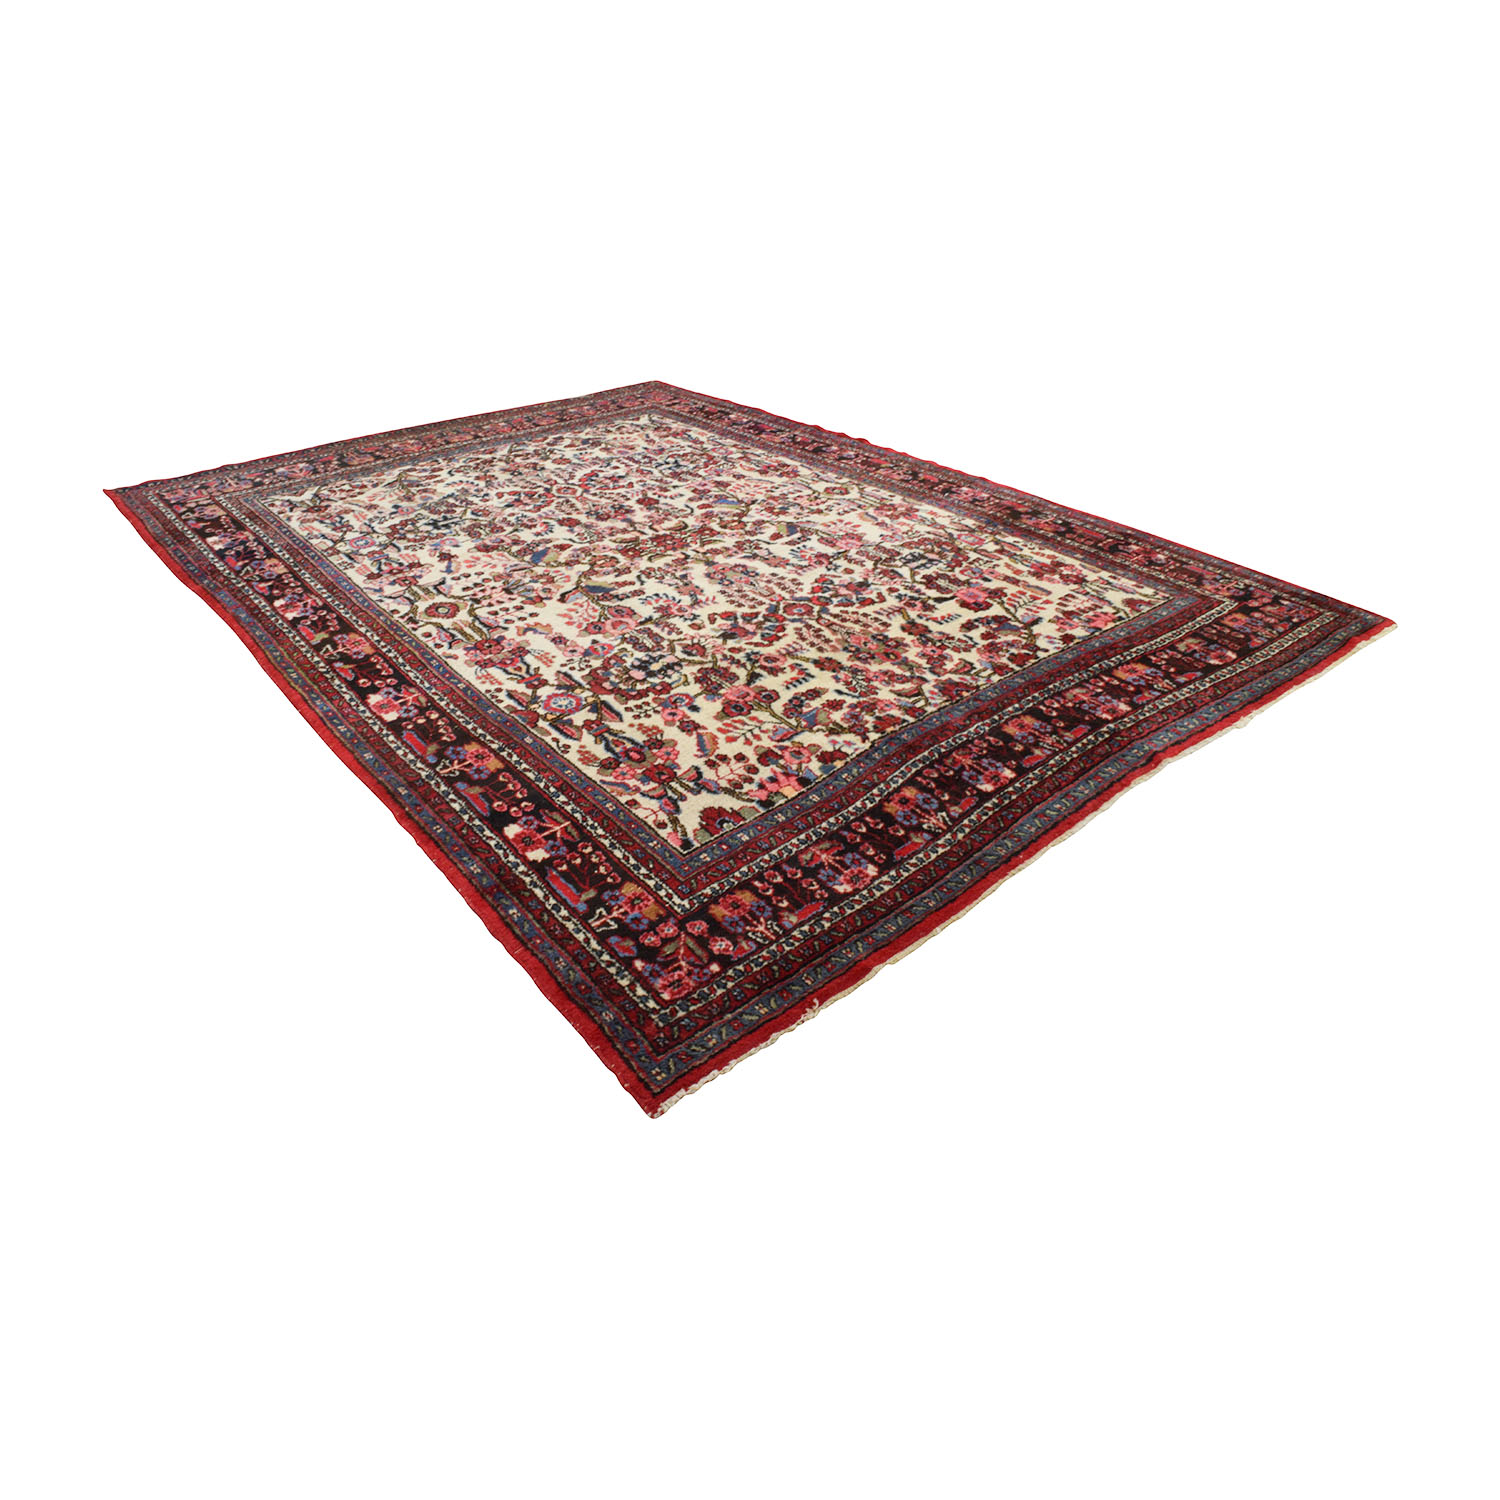 shop Handmade Vintage Red Persian Rug  Decor